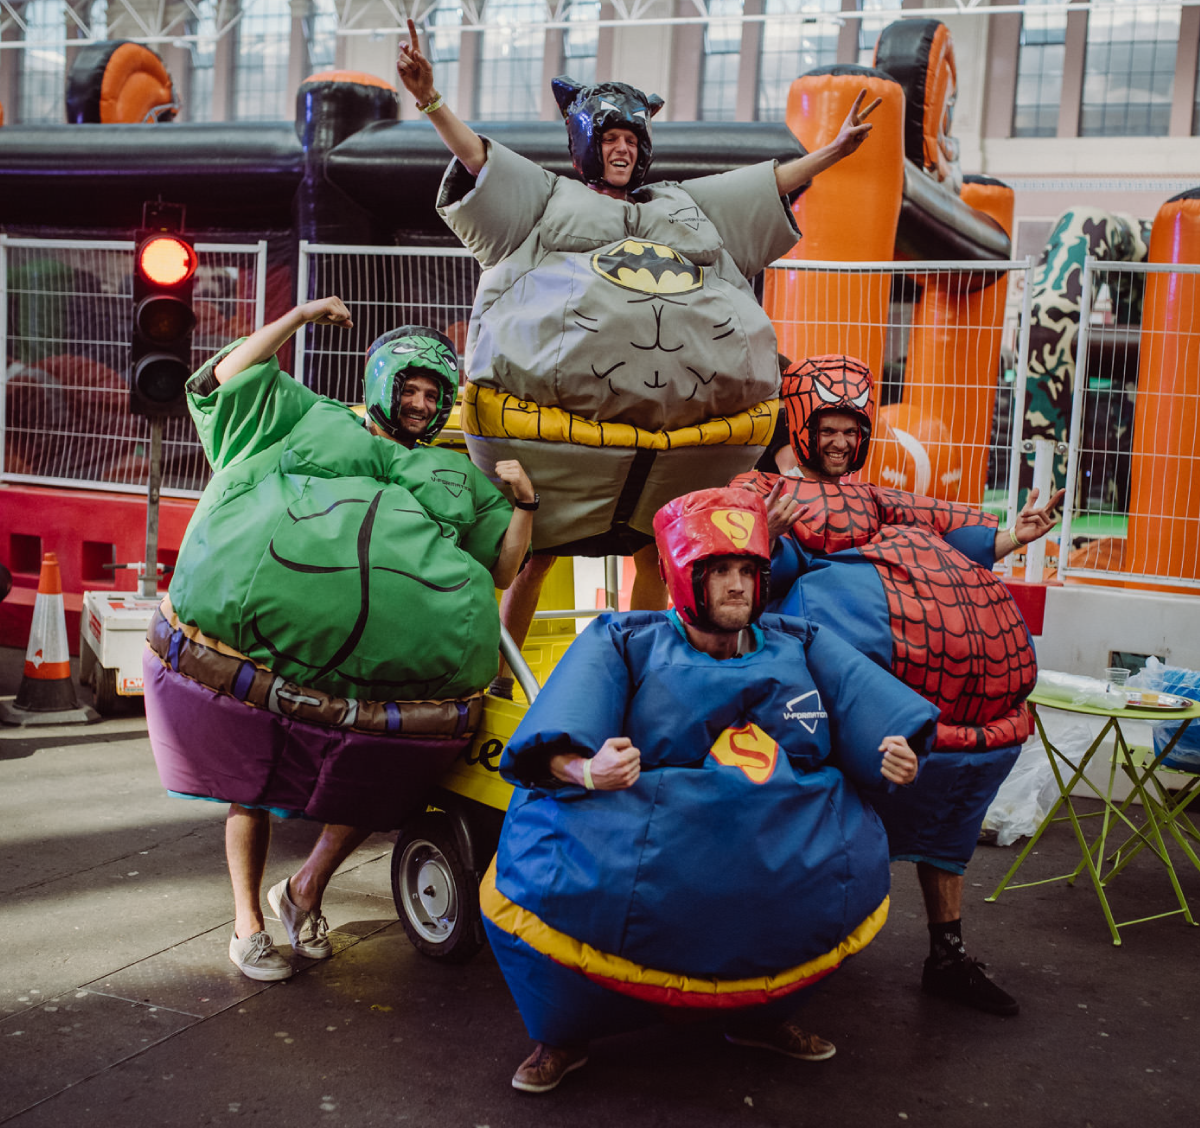 HERO-SUPERHEROES-SUMO